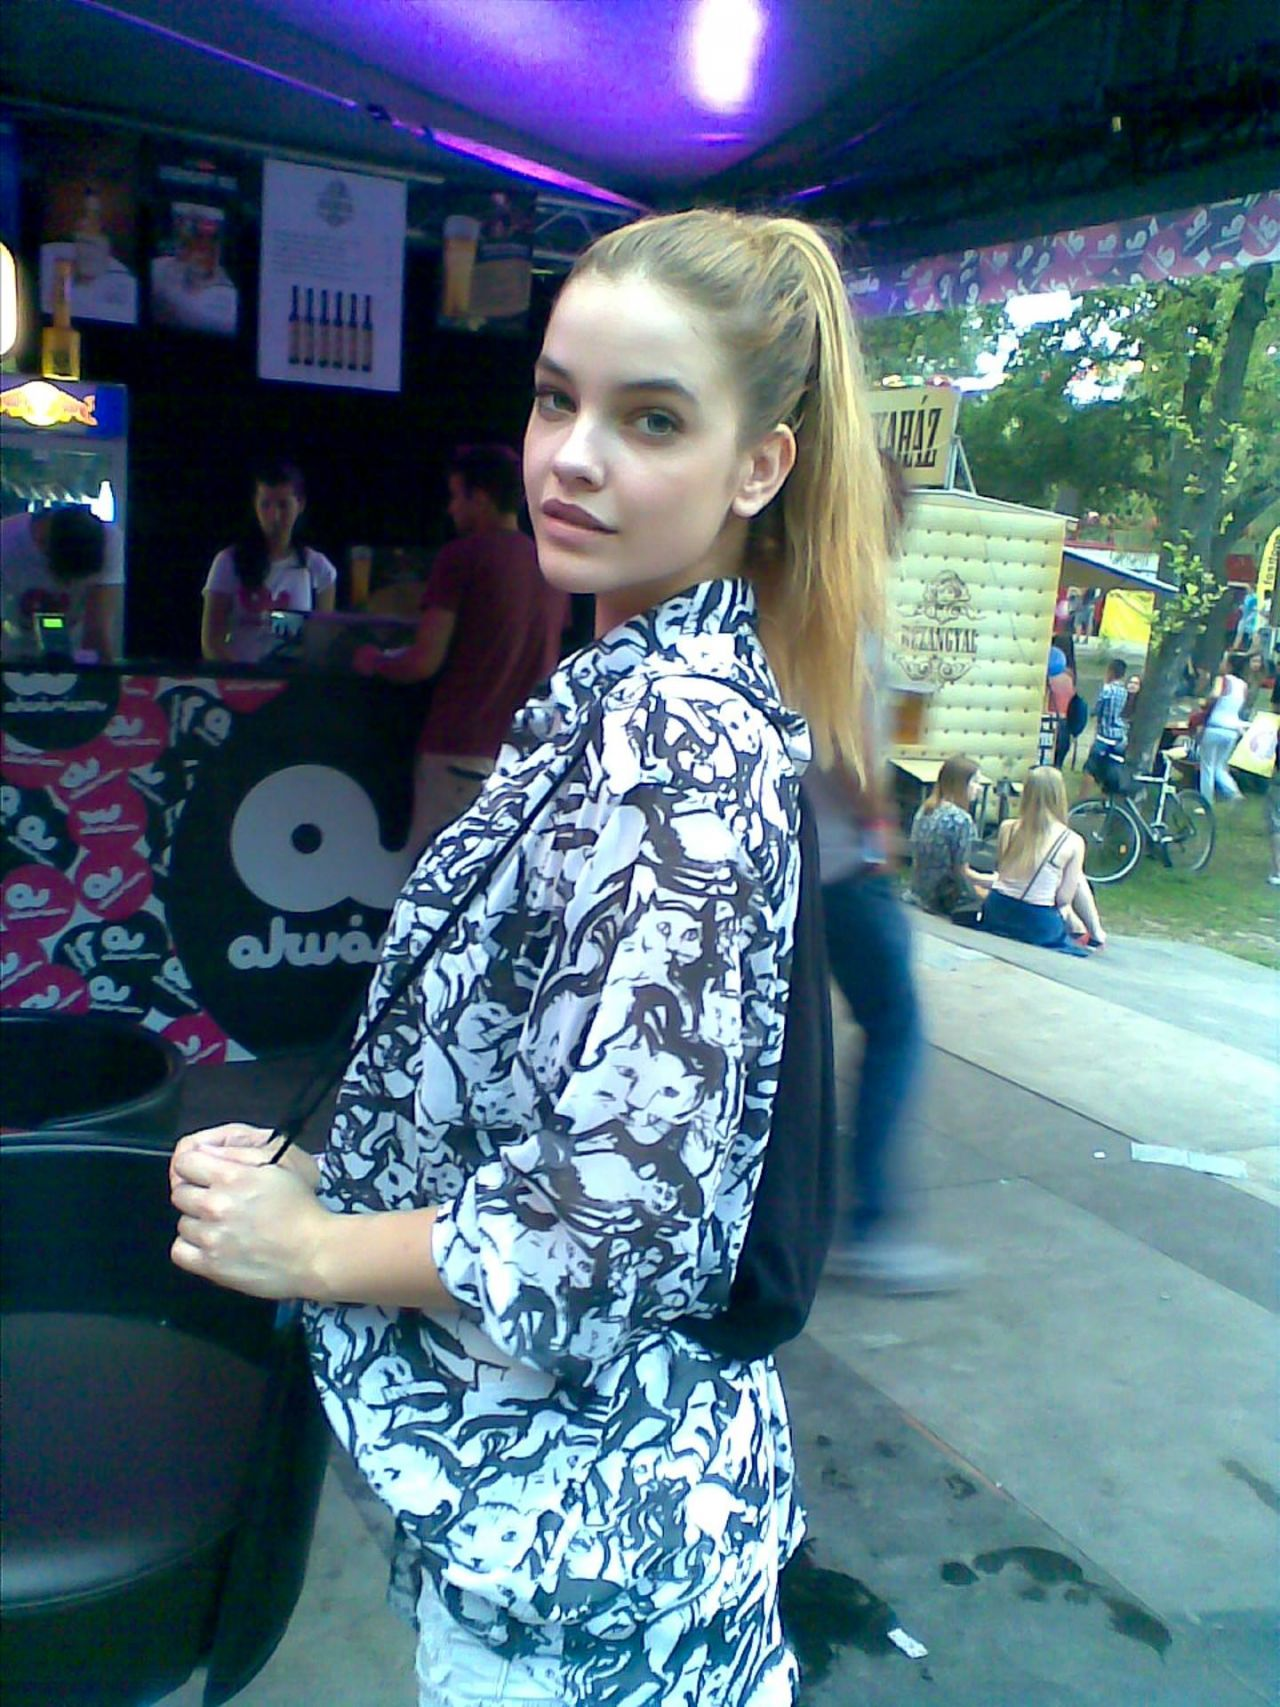 Barbara Palvin at Sziget Festival at Óbudai Island in Budapest - August 2014